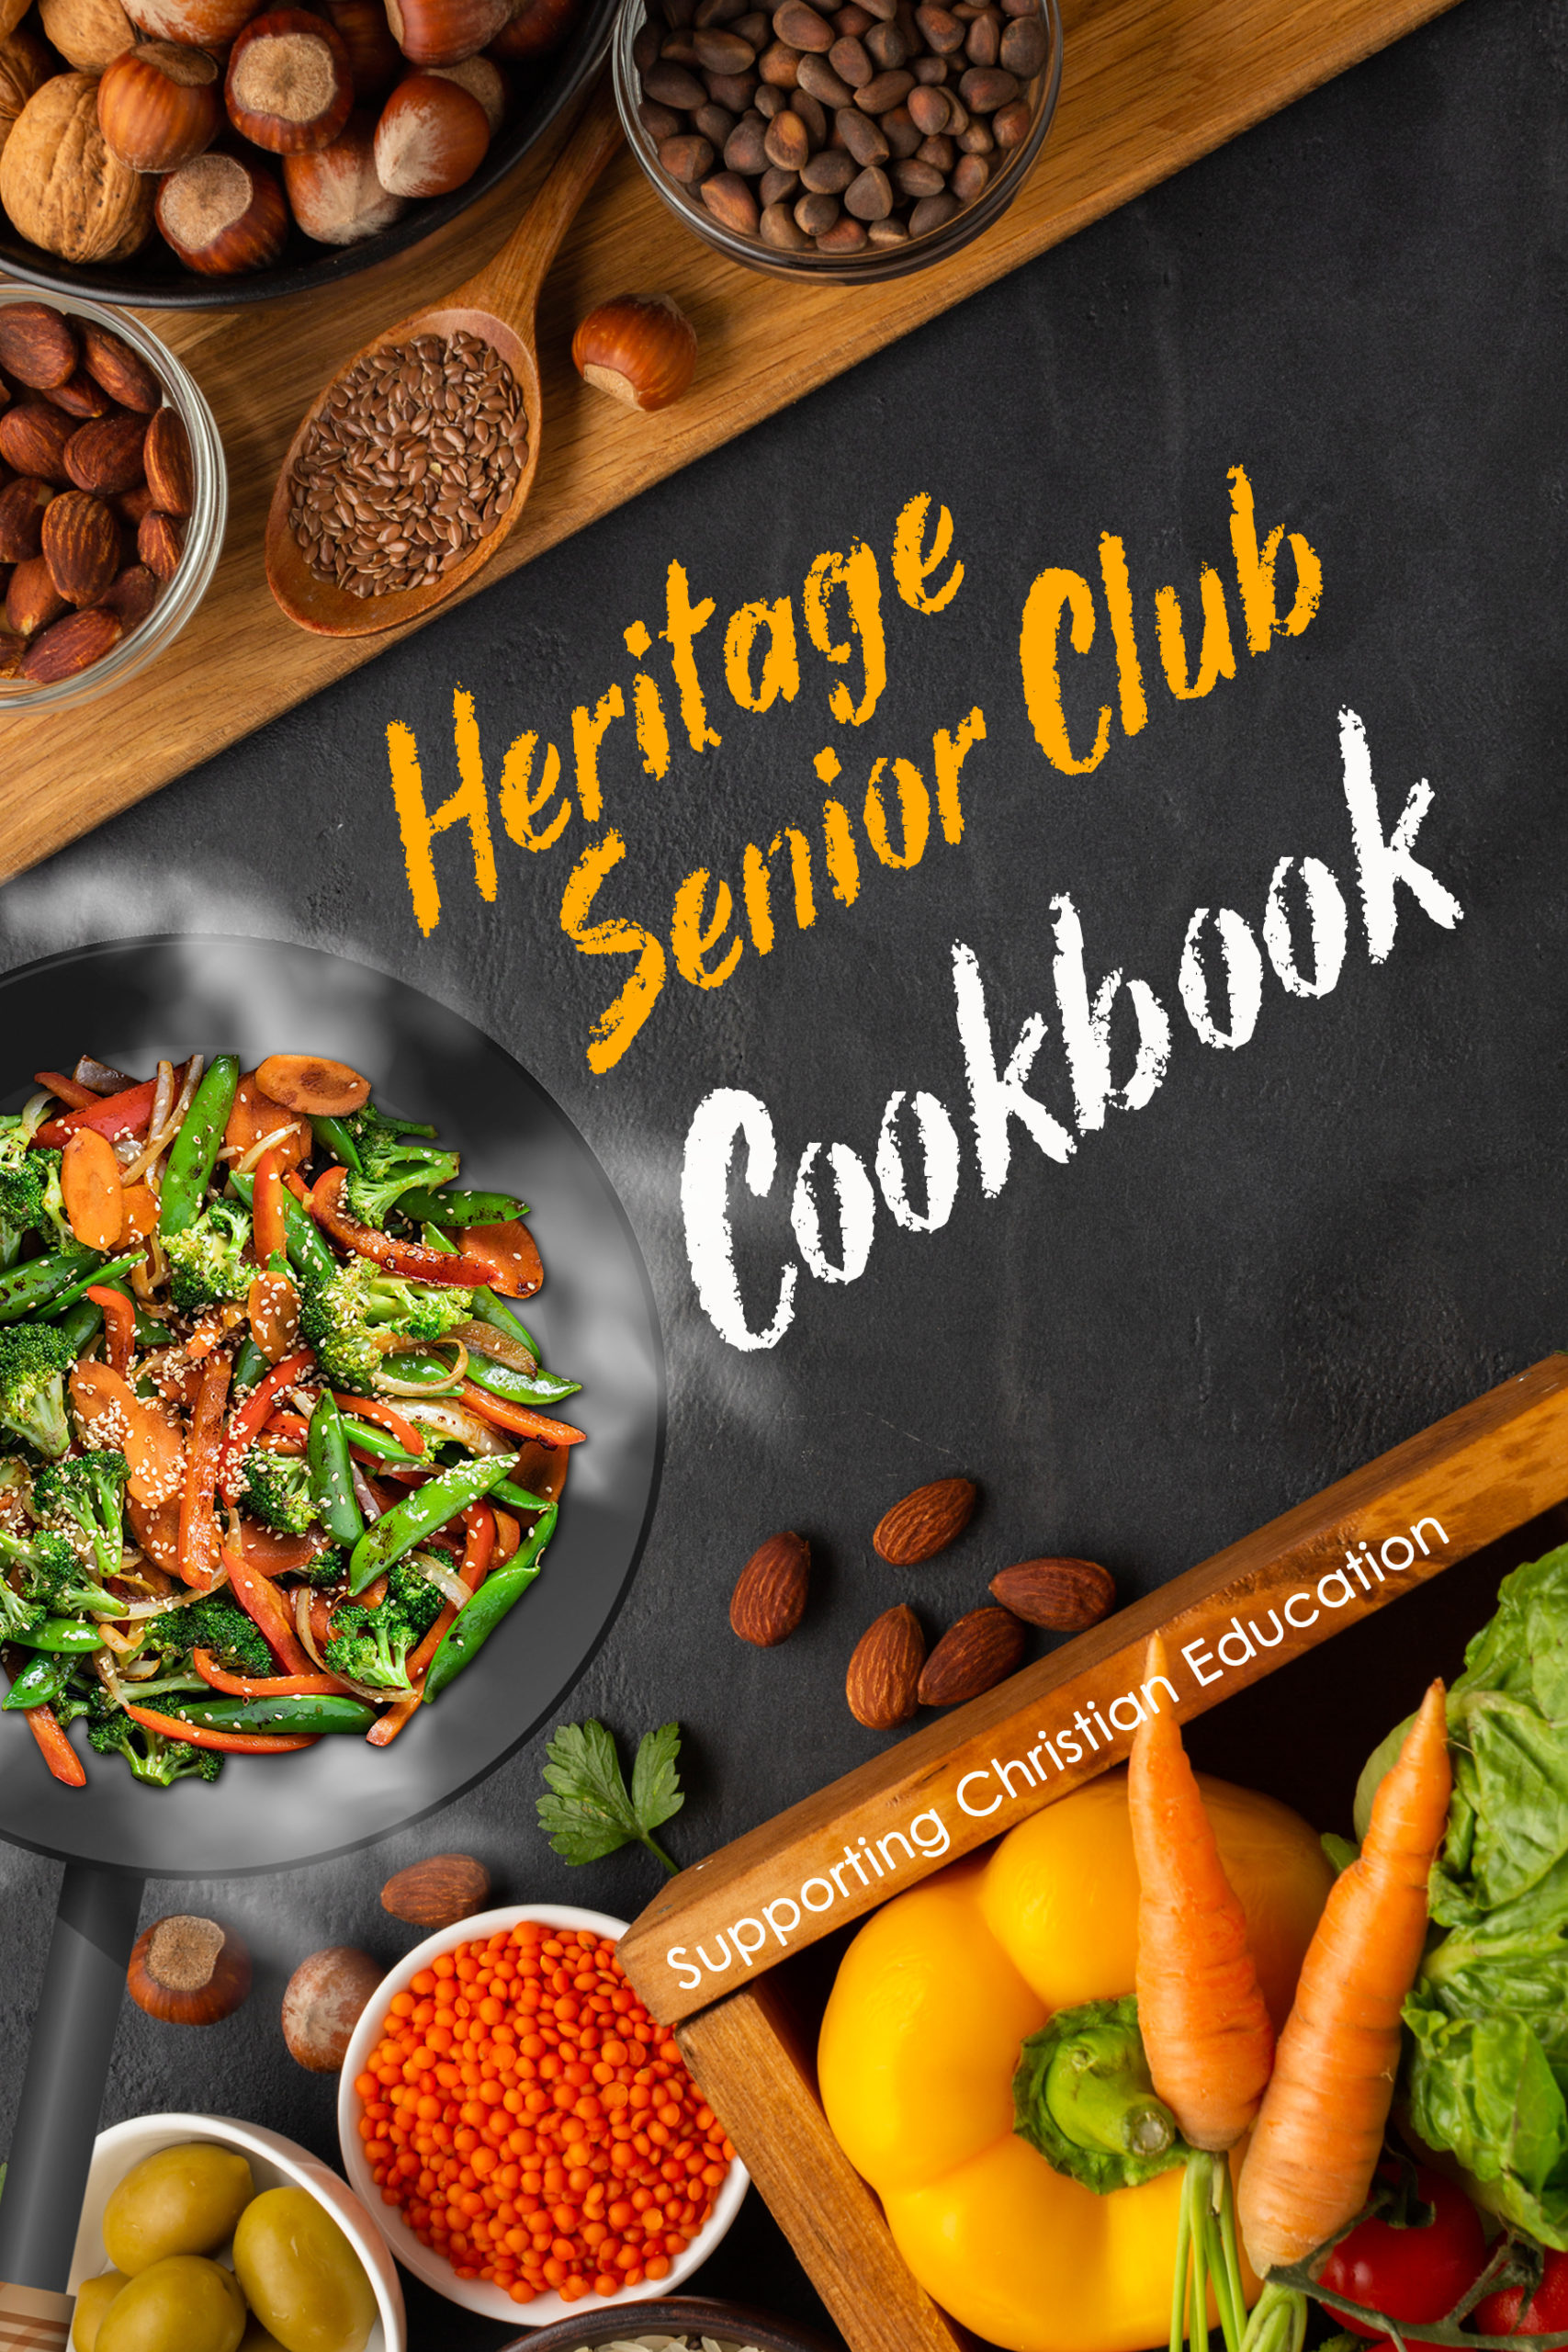 Heritage Senior Club